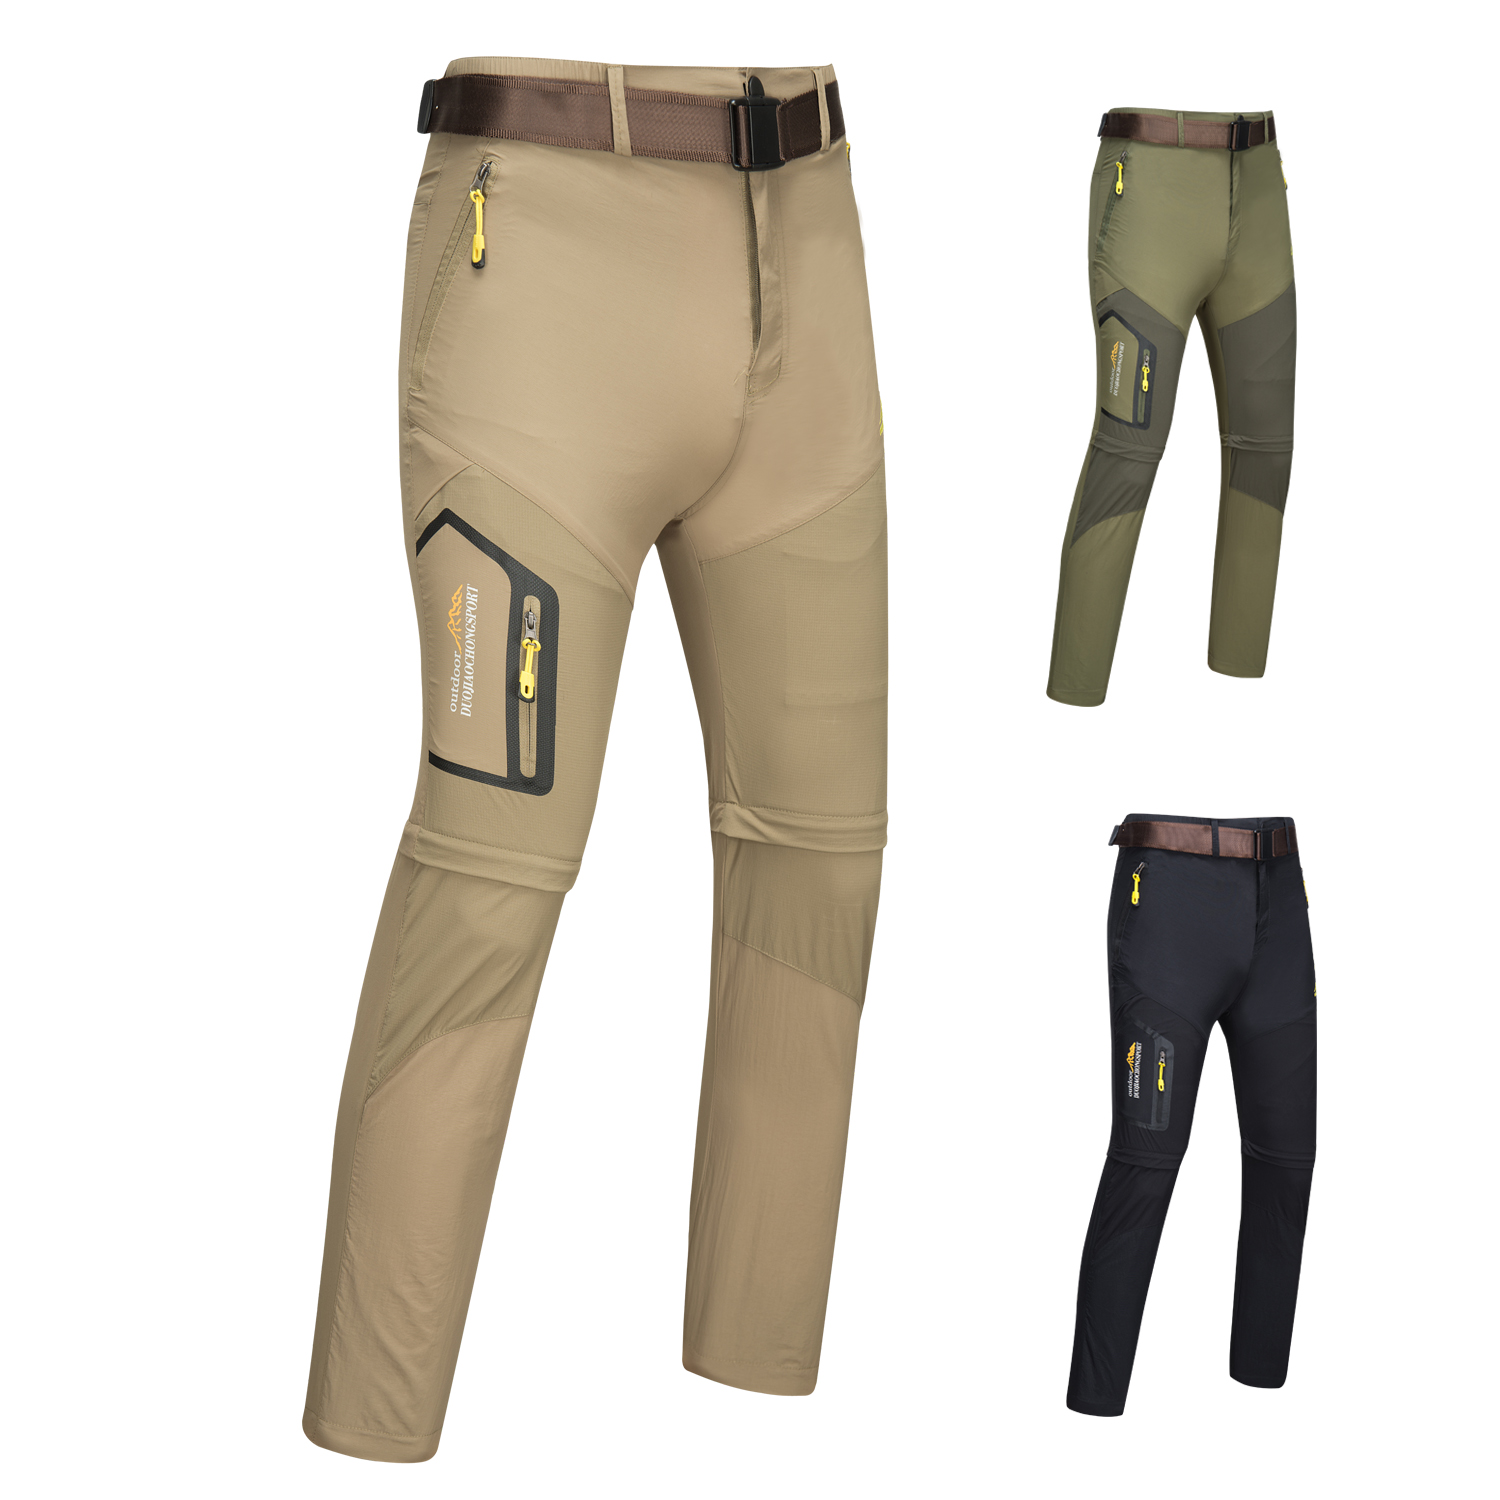 Outdoor Men Tactical Lightweight Zip Off Quick Drying Stretch Convertible Cargo Pants Shorts Bottom For Hiking Camping Travel